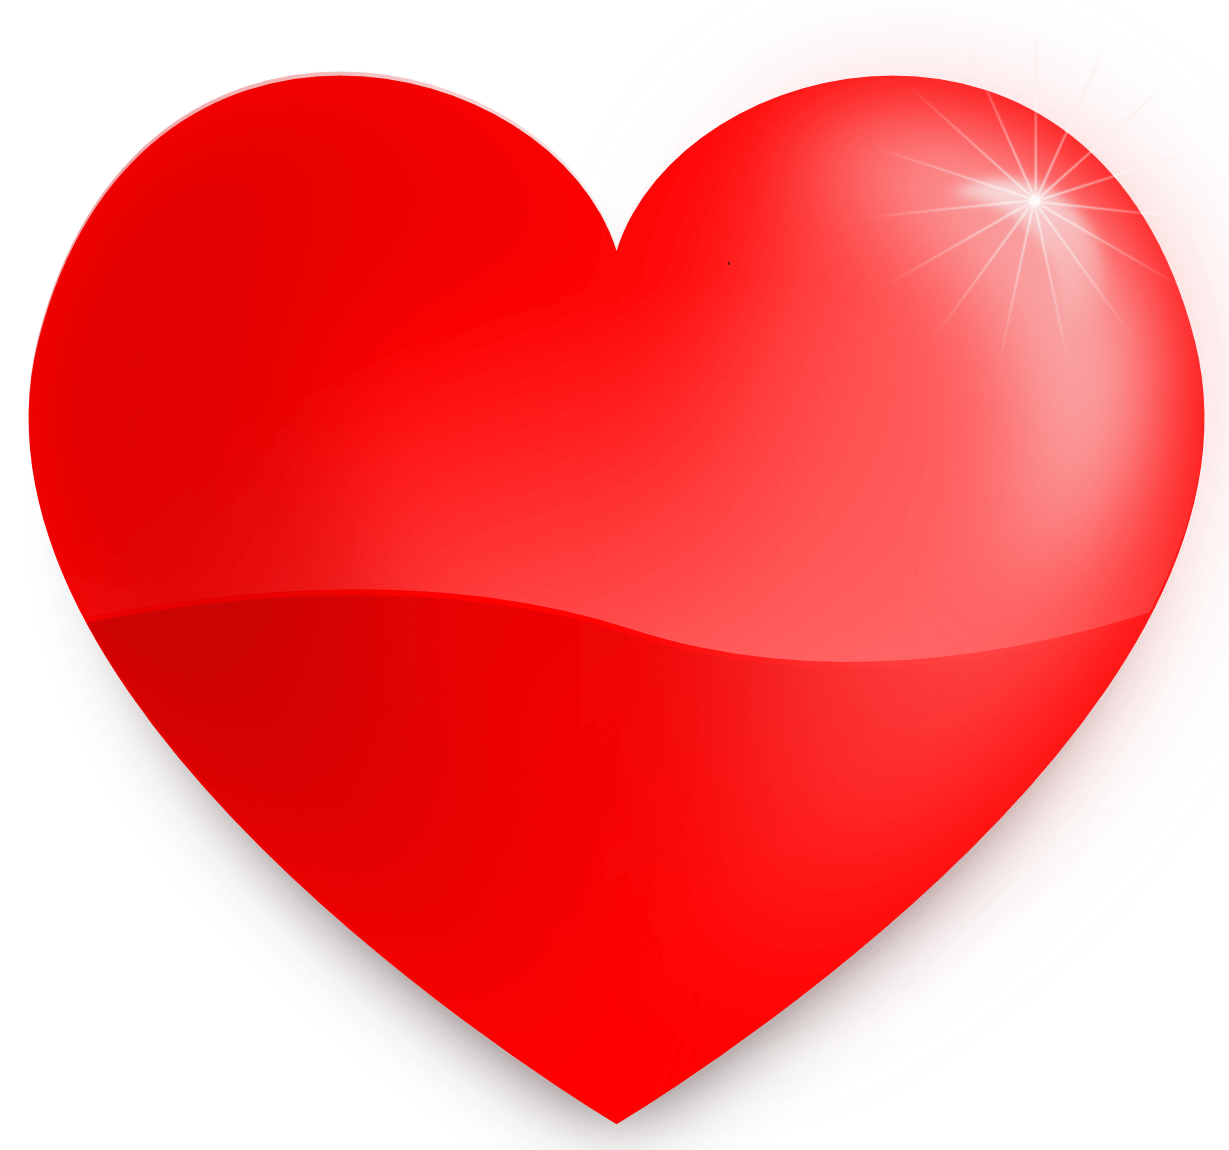 I Want To Download Cute Wallpapers Images Of Valentine Hearts 20934 Hd Wallpapers Background